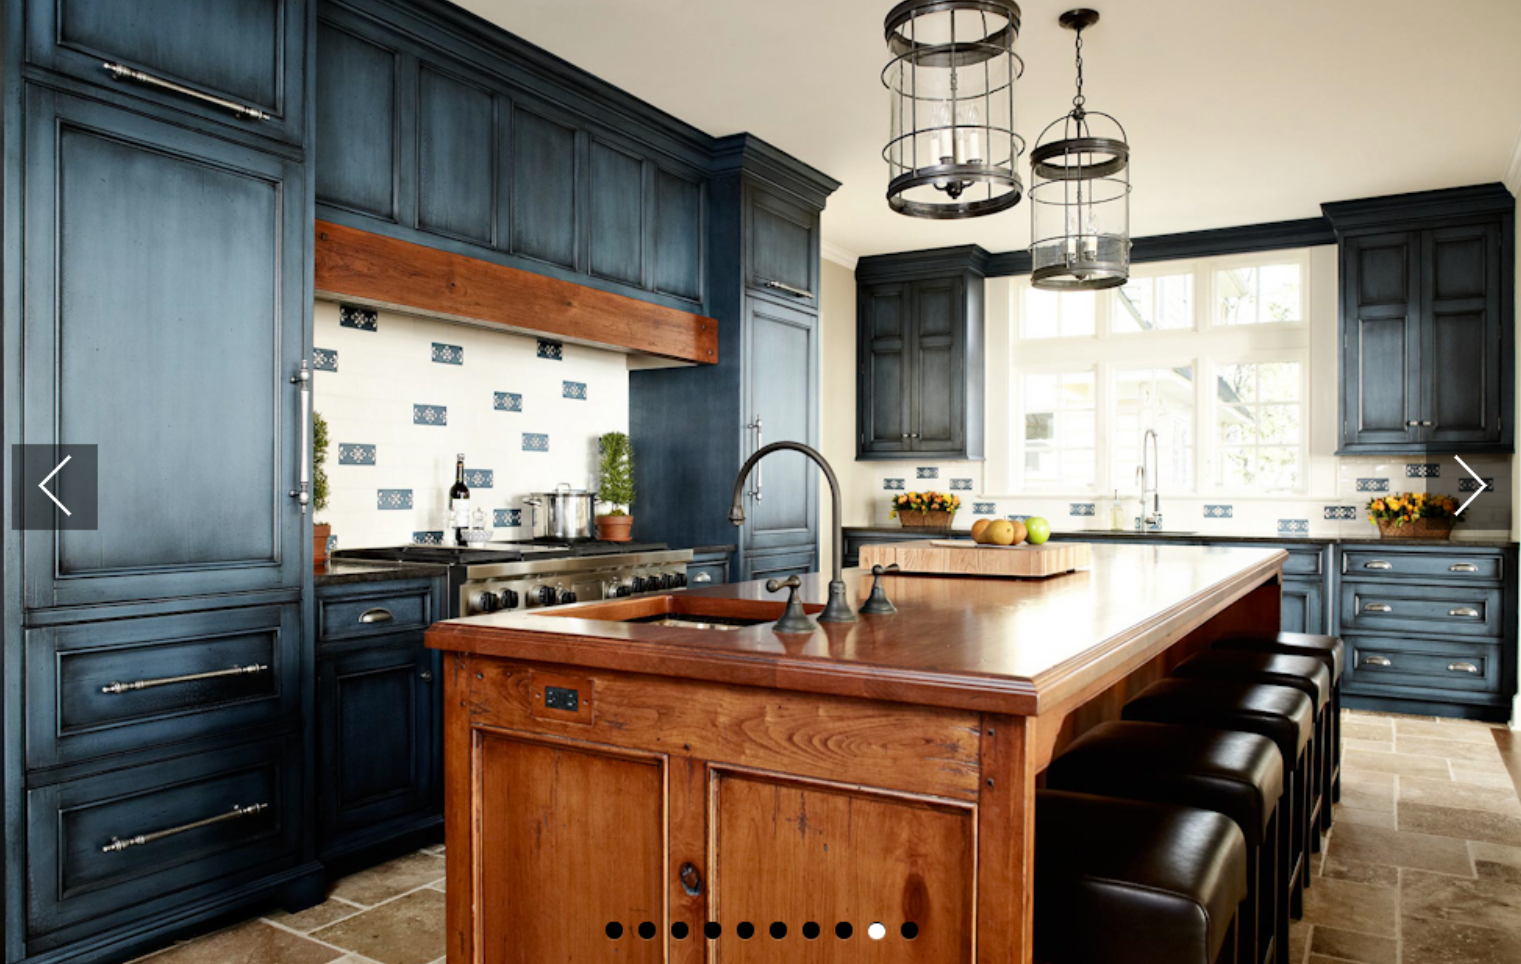 mix of woods | Distressed kitchen cabinets, Tuscan kitchen ...